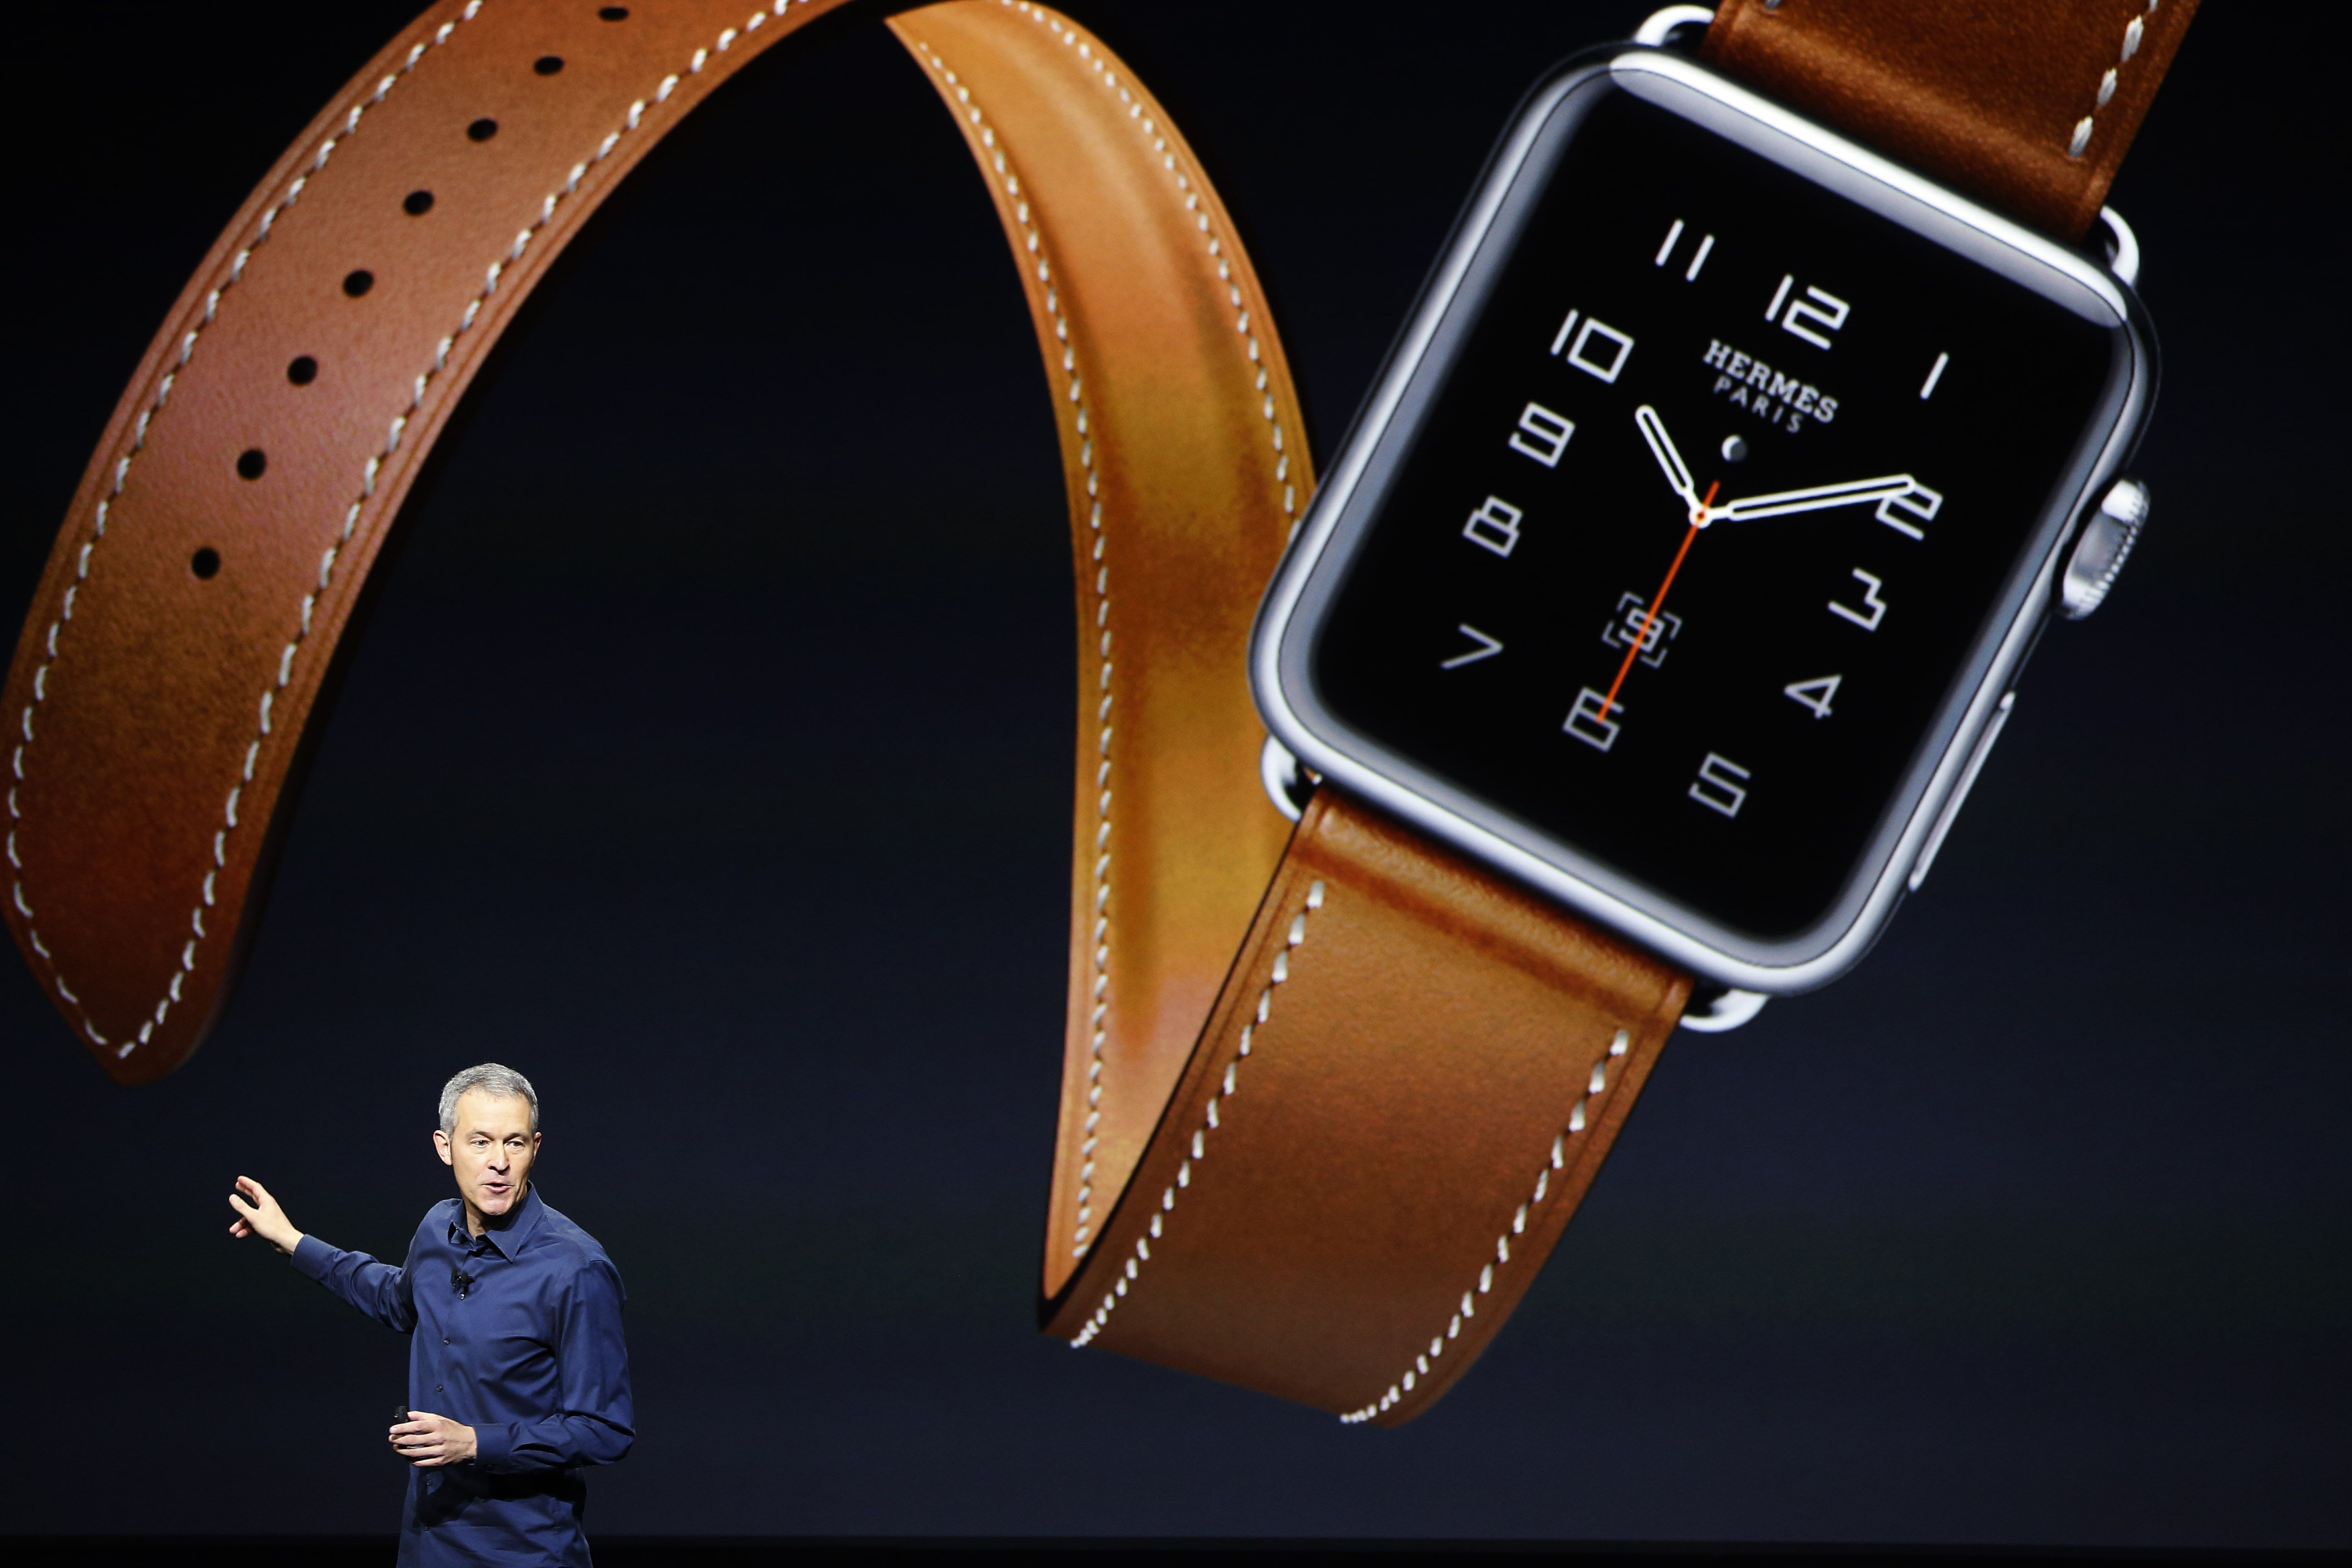 Apple Watch Q4 2015 Sales Estimates How Many Smartwatches